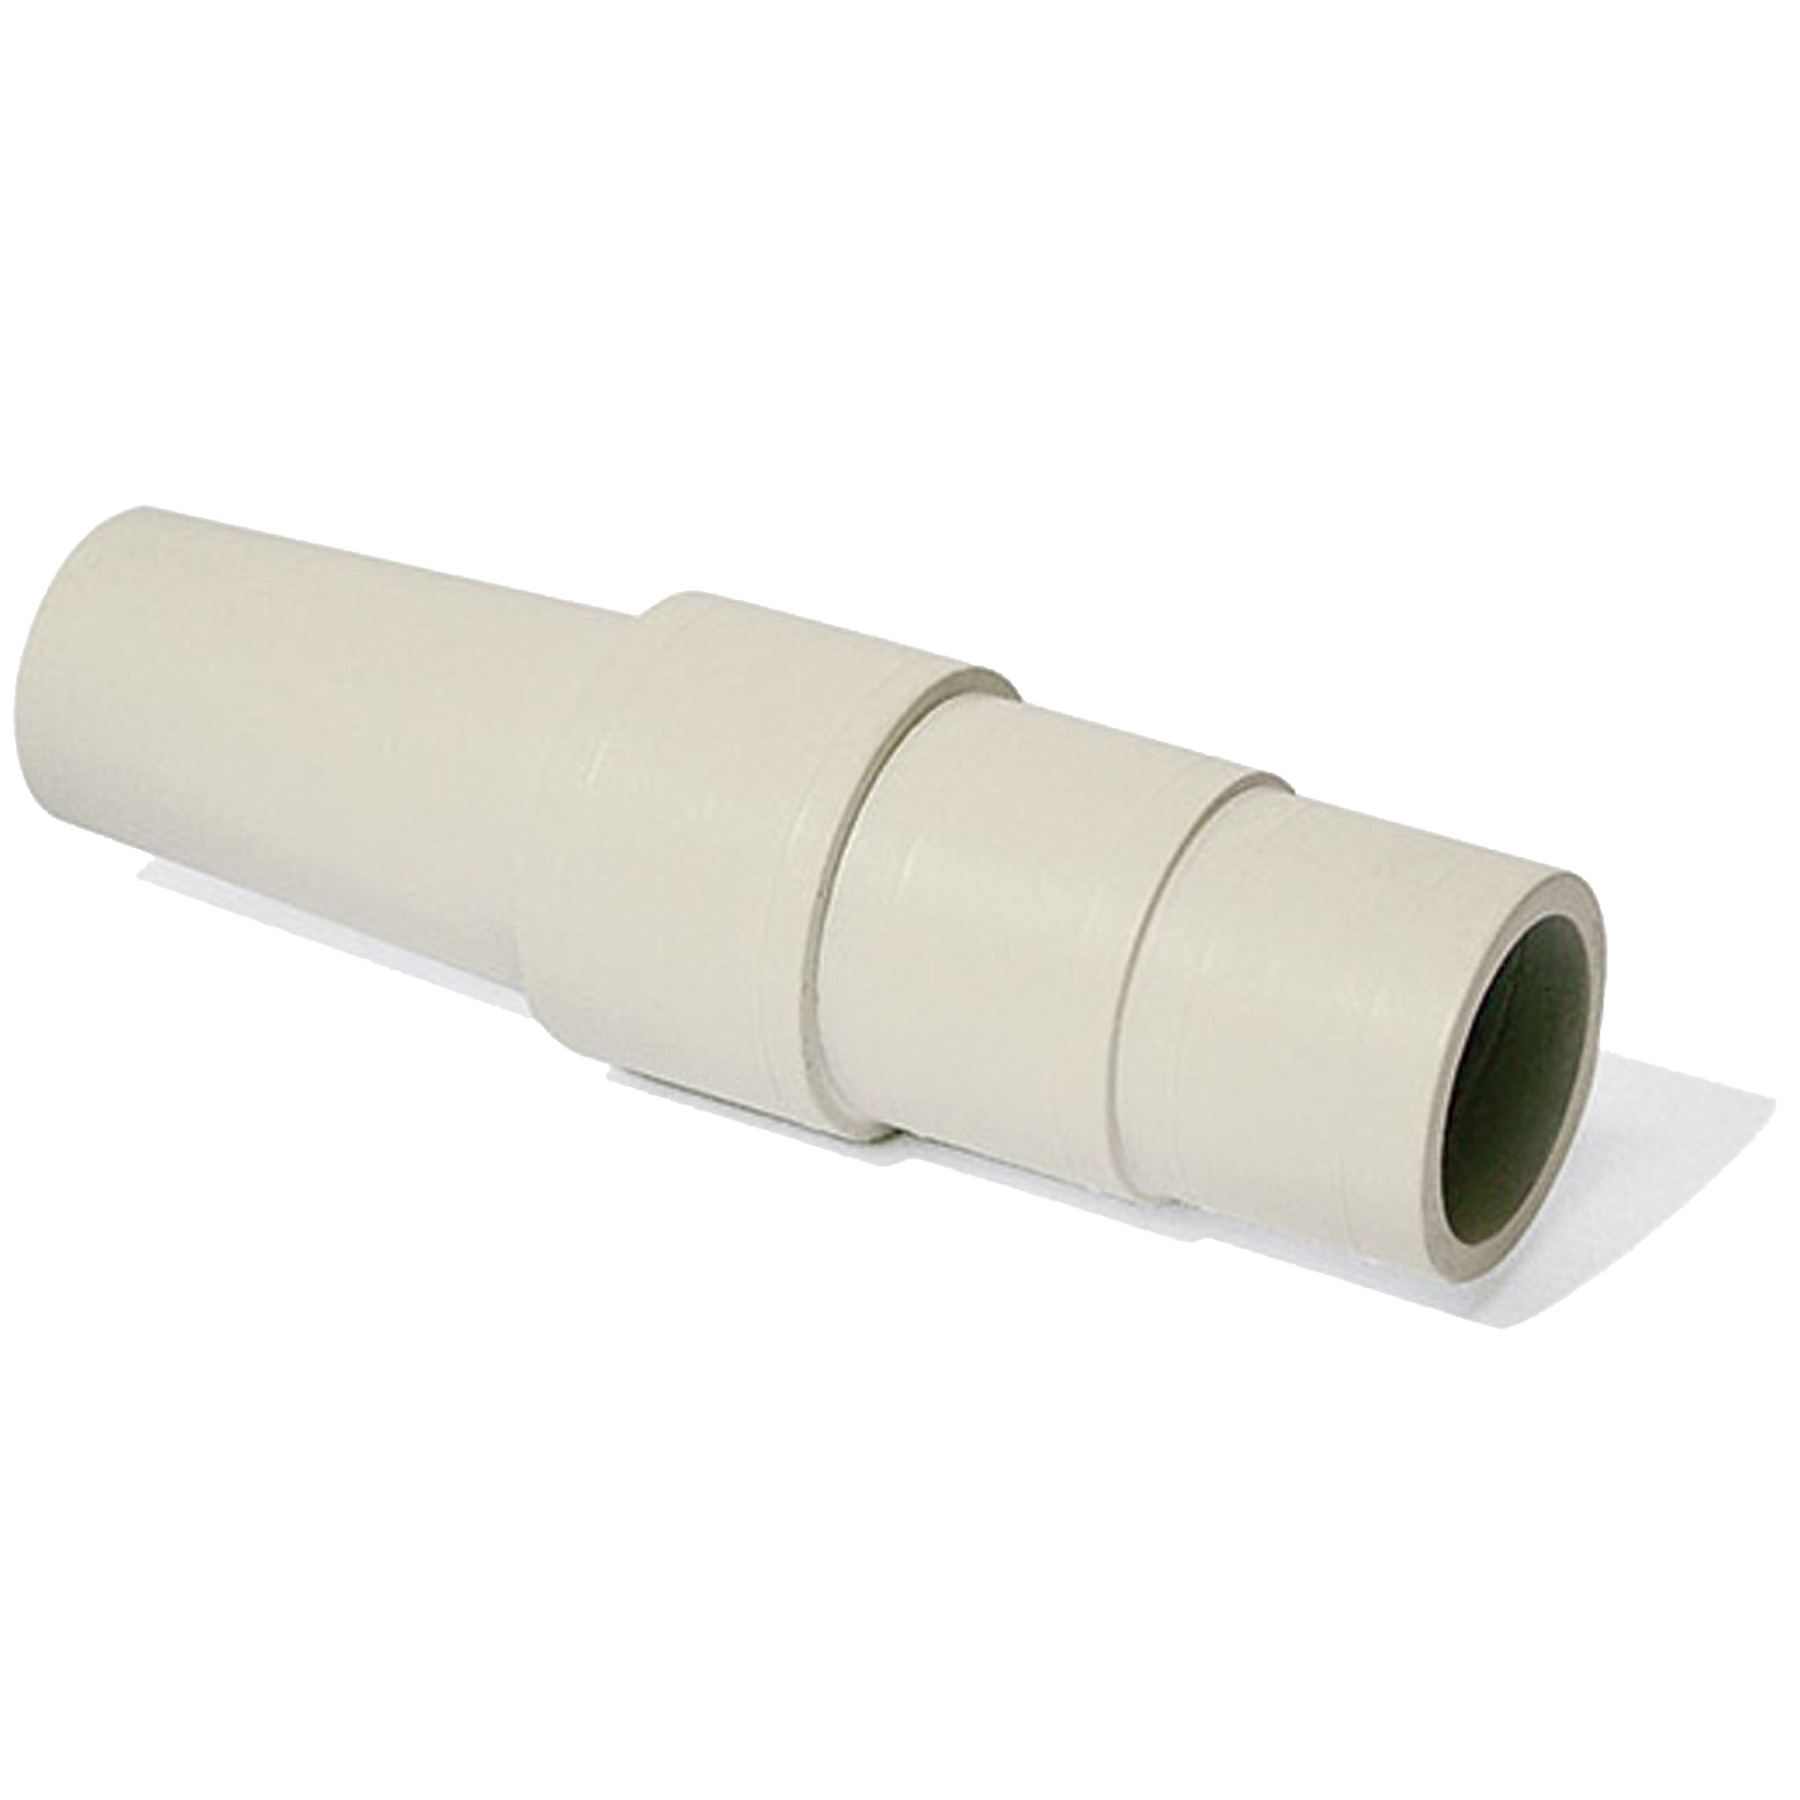 Vacuum Hose Adapter, For Intex Systems